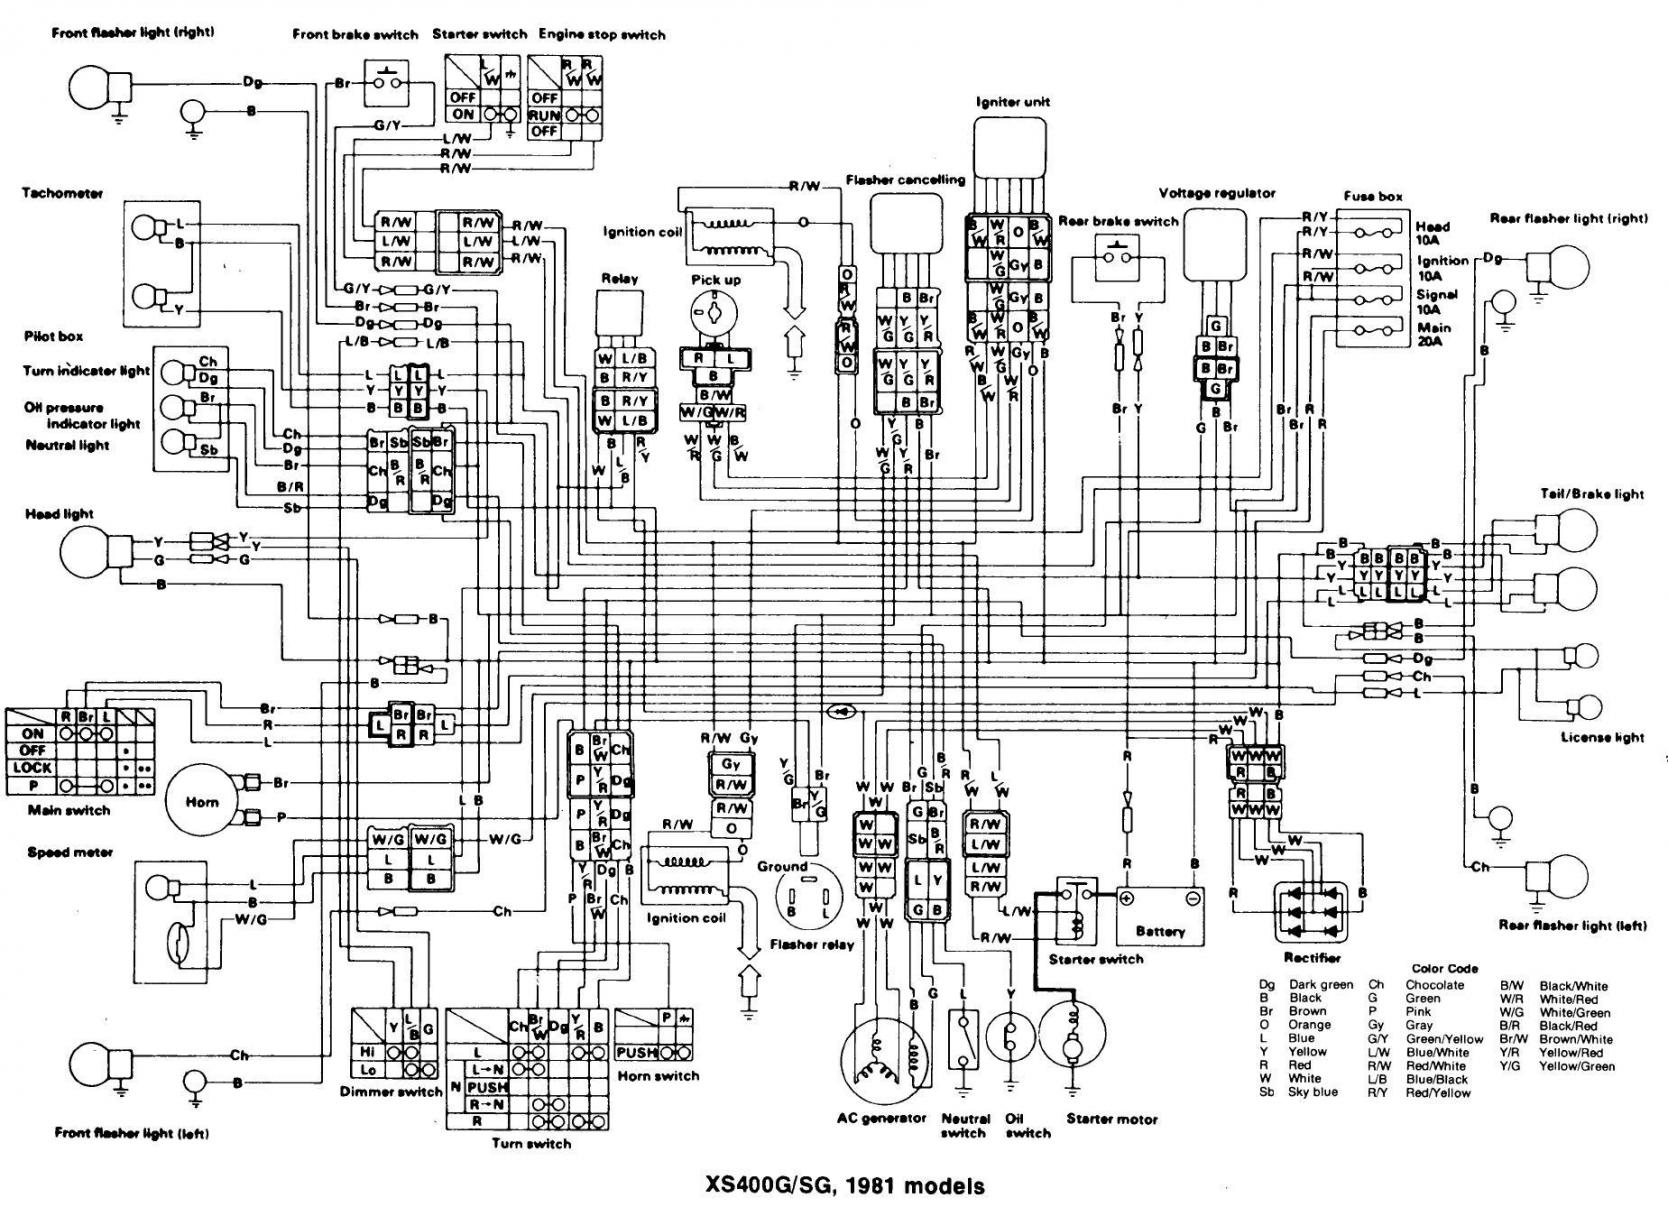 hight resolution of xs360 wiring diagram wiring diagram blogxs360 wiring diagram wiring schematic data 1972 yamaha xs360 xs360 wiring